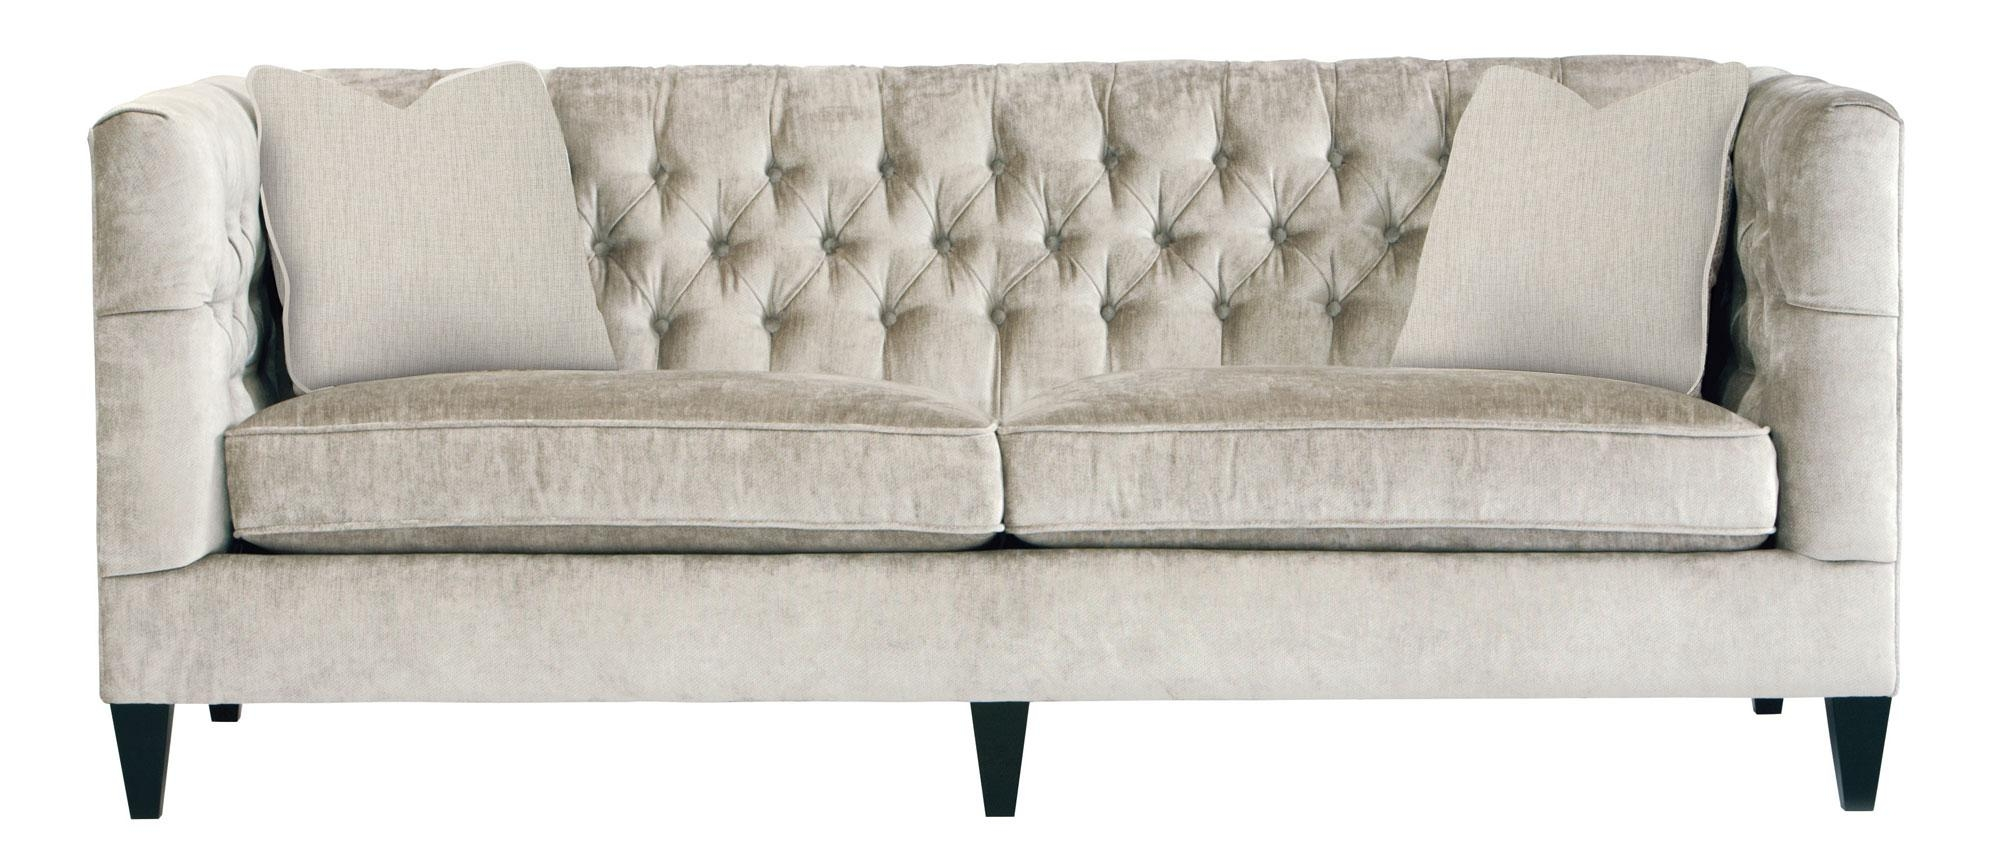 Sofas And Loveseats | Bernhardt With Bernhardt Sofas (View 16 of 20)